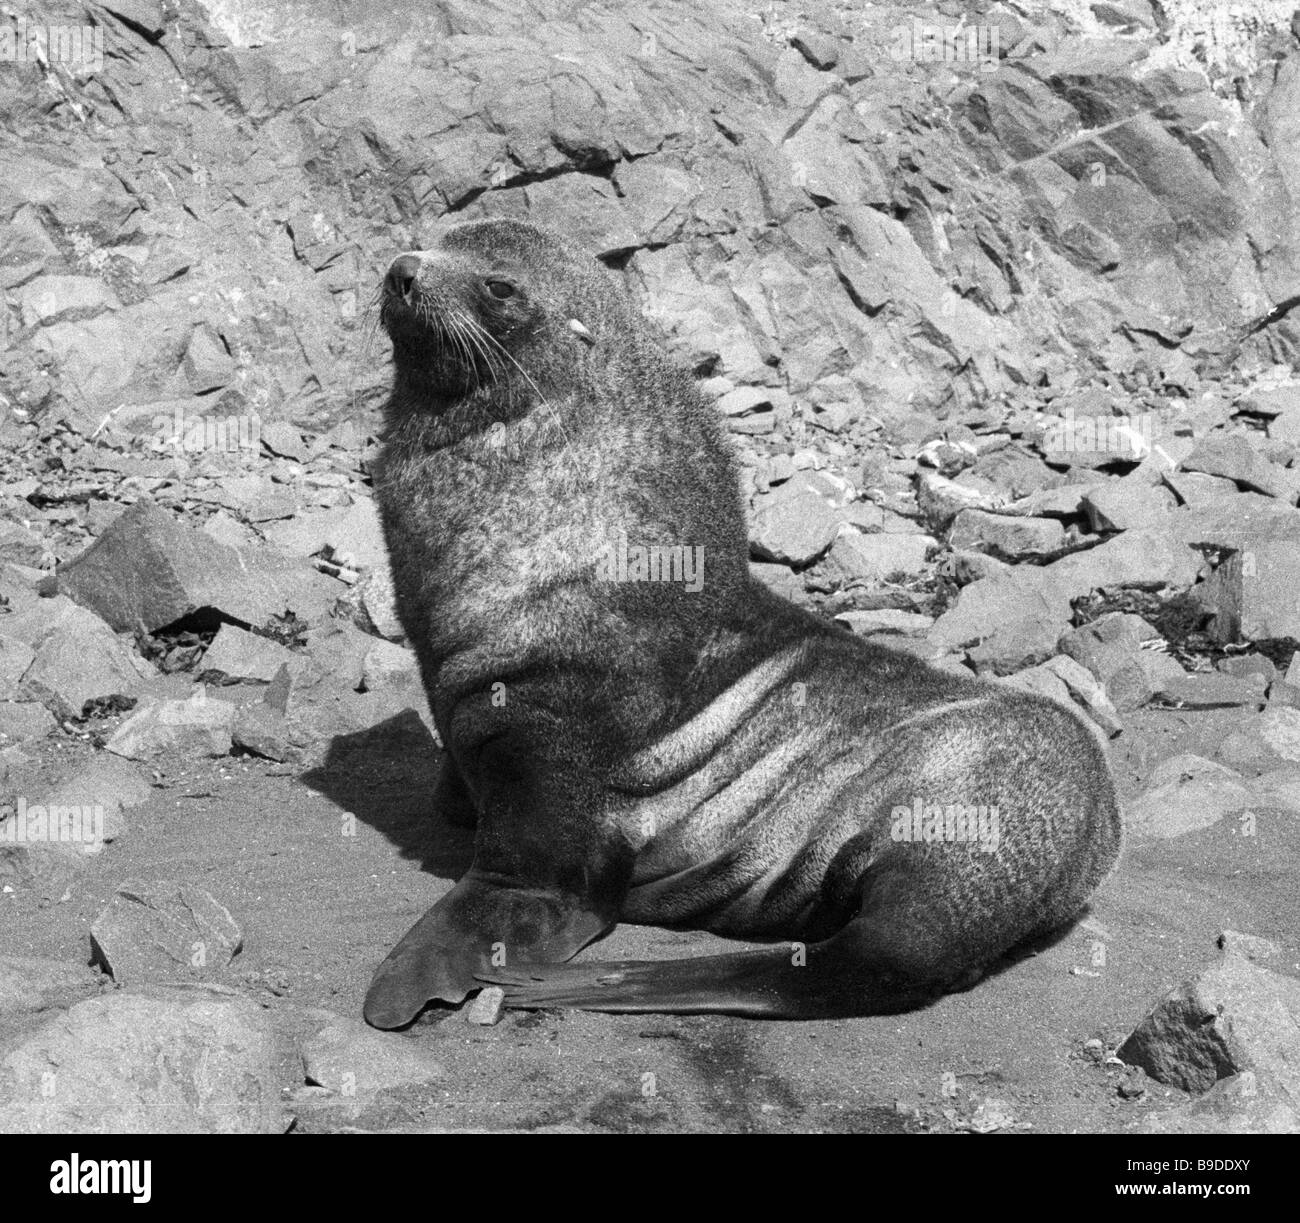 A southern seal living near the Bellinsgauzen station in the Antarctic - Stock Image